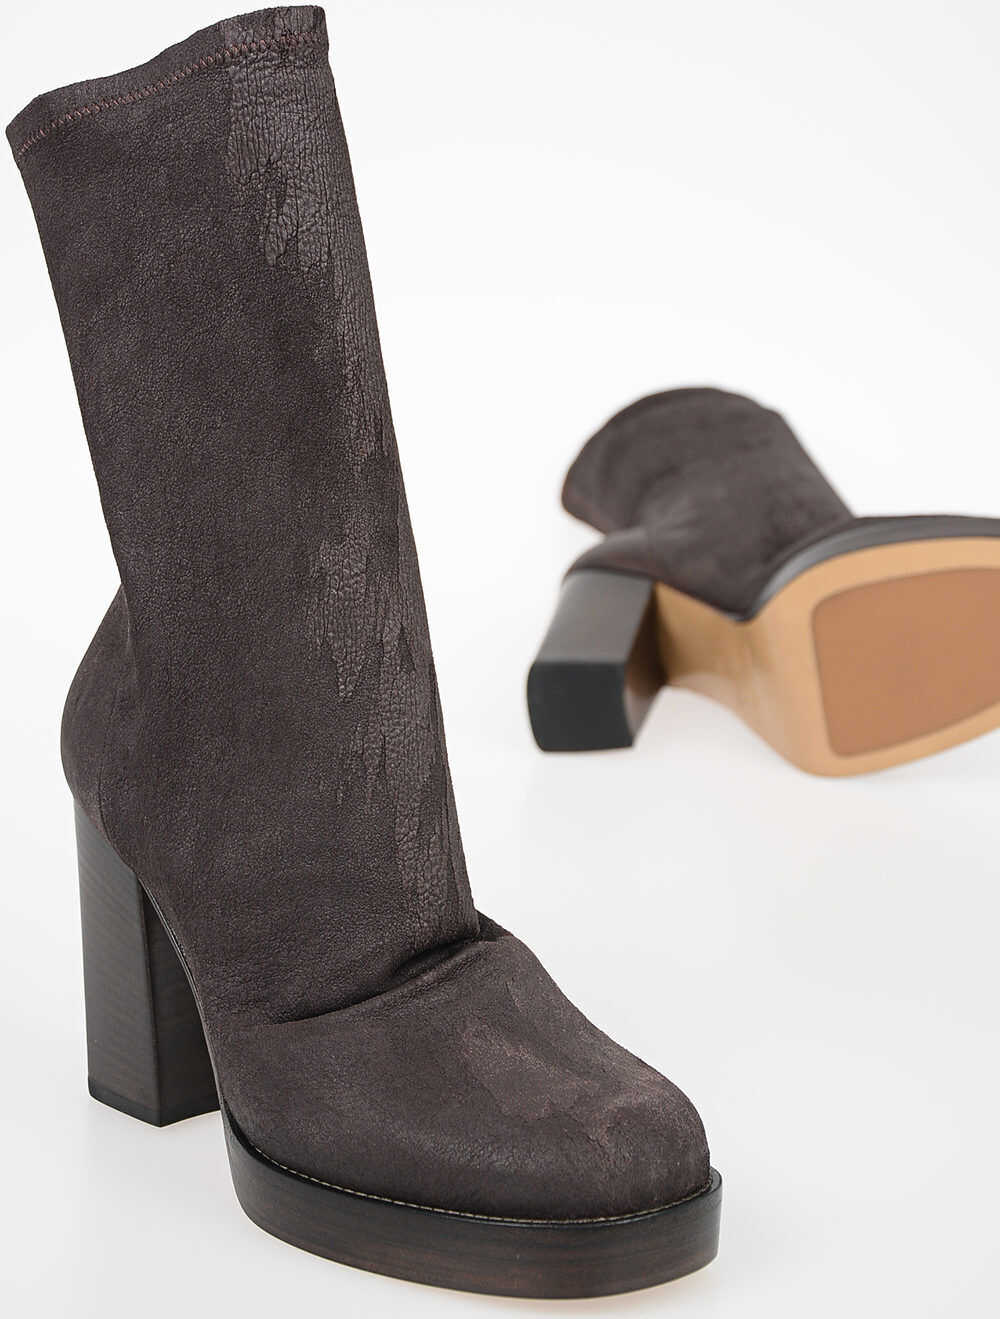 Rick Owens 10cm Leather CHUNKY SOCK Boots RASIN BROWN